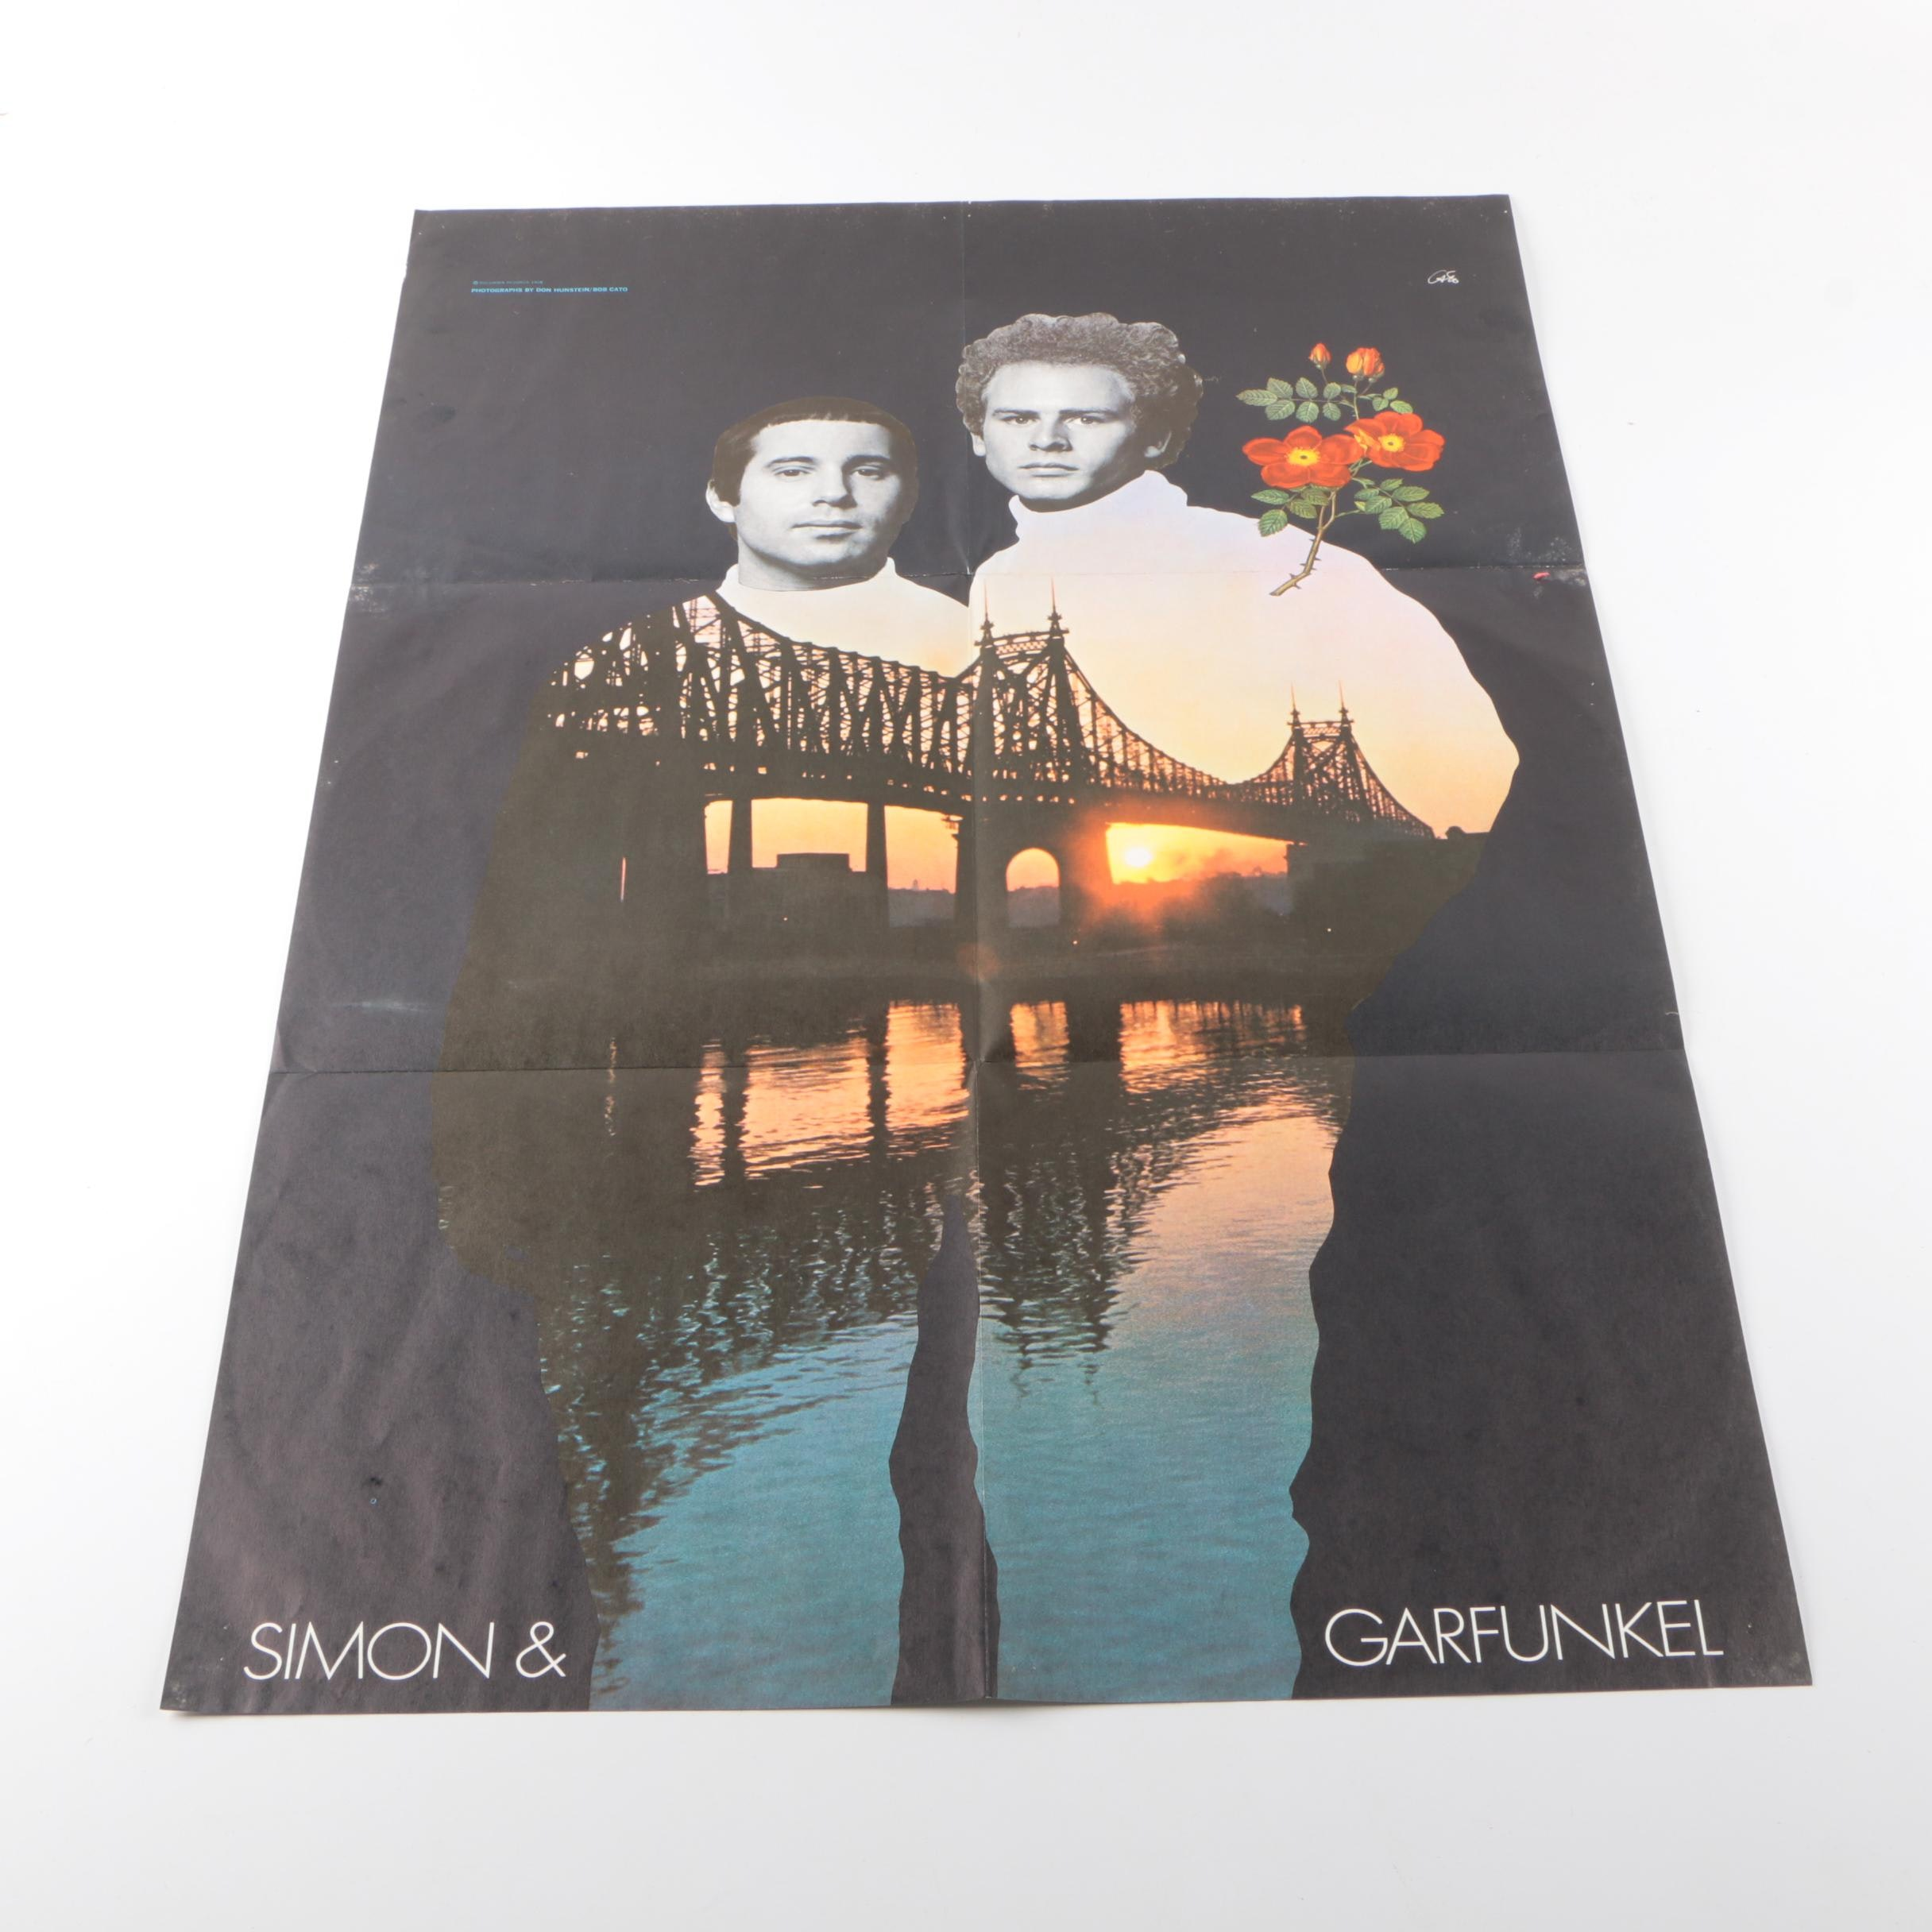 Simon and Garfunkel Lithograph Poster